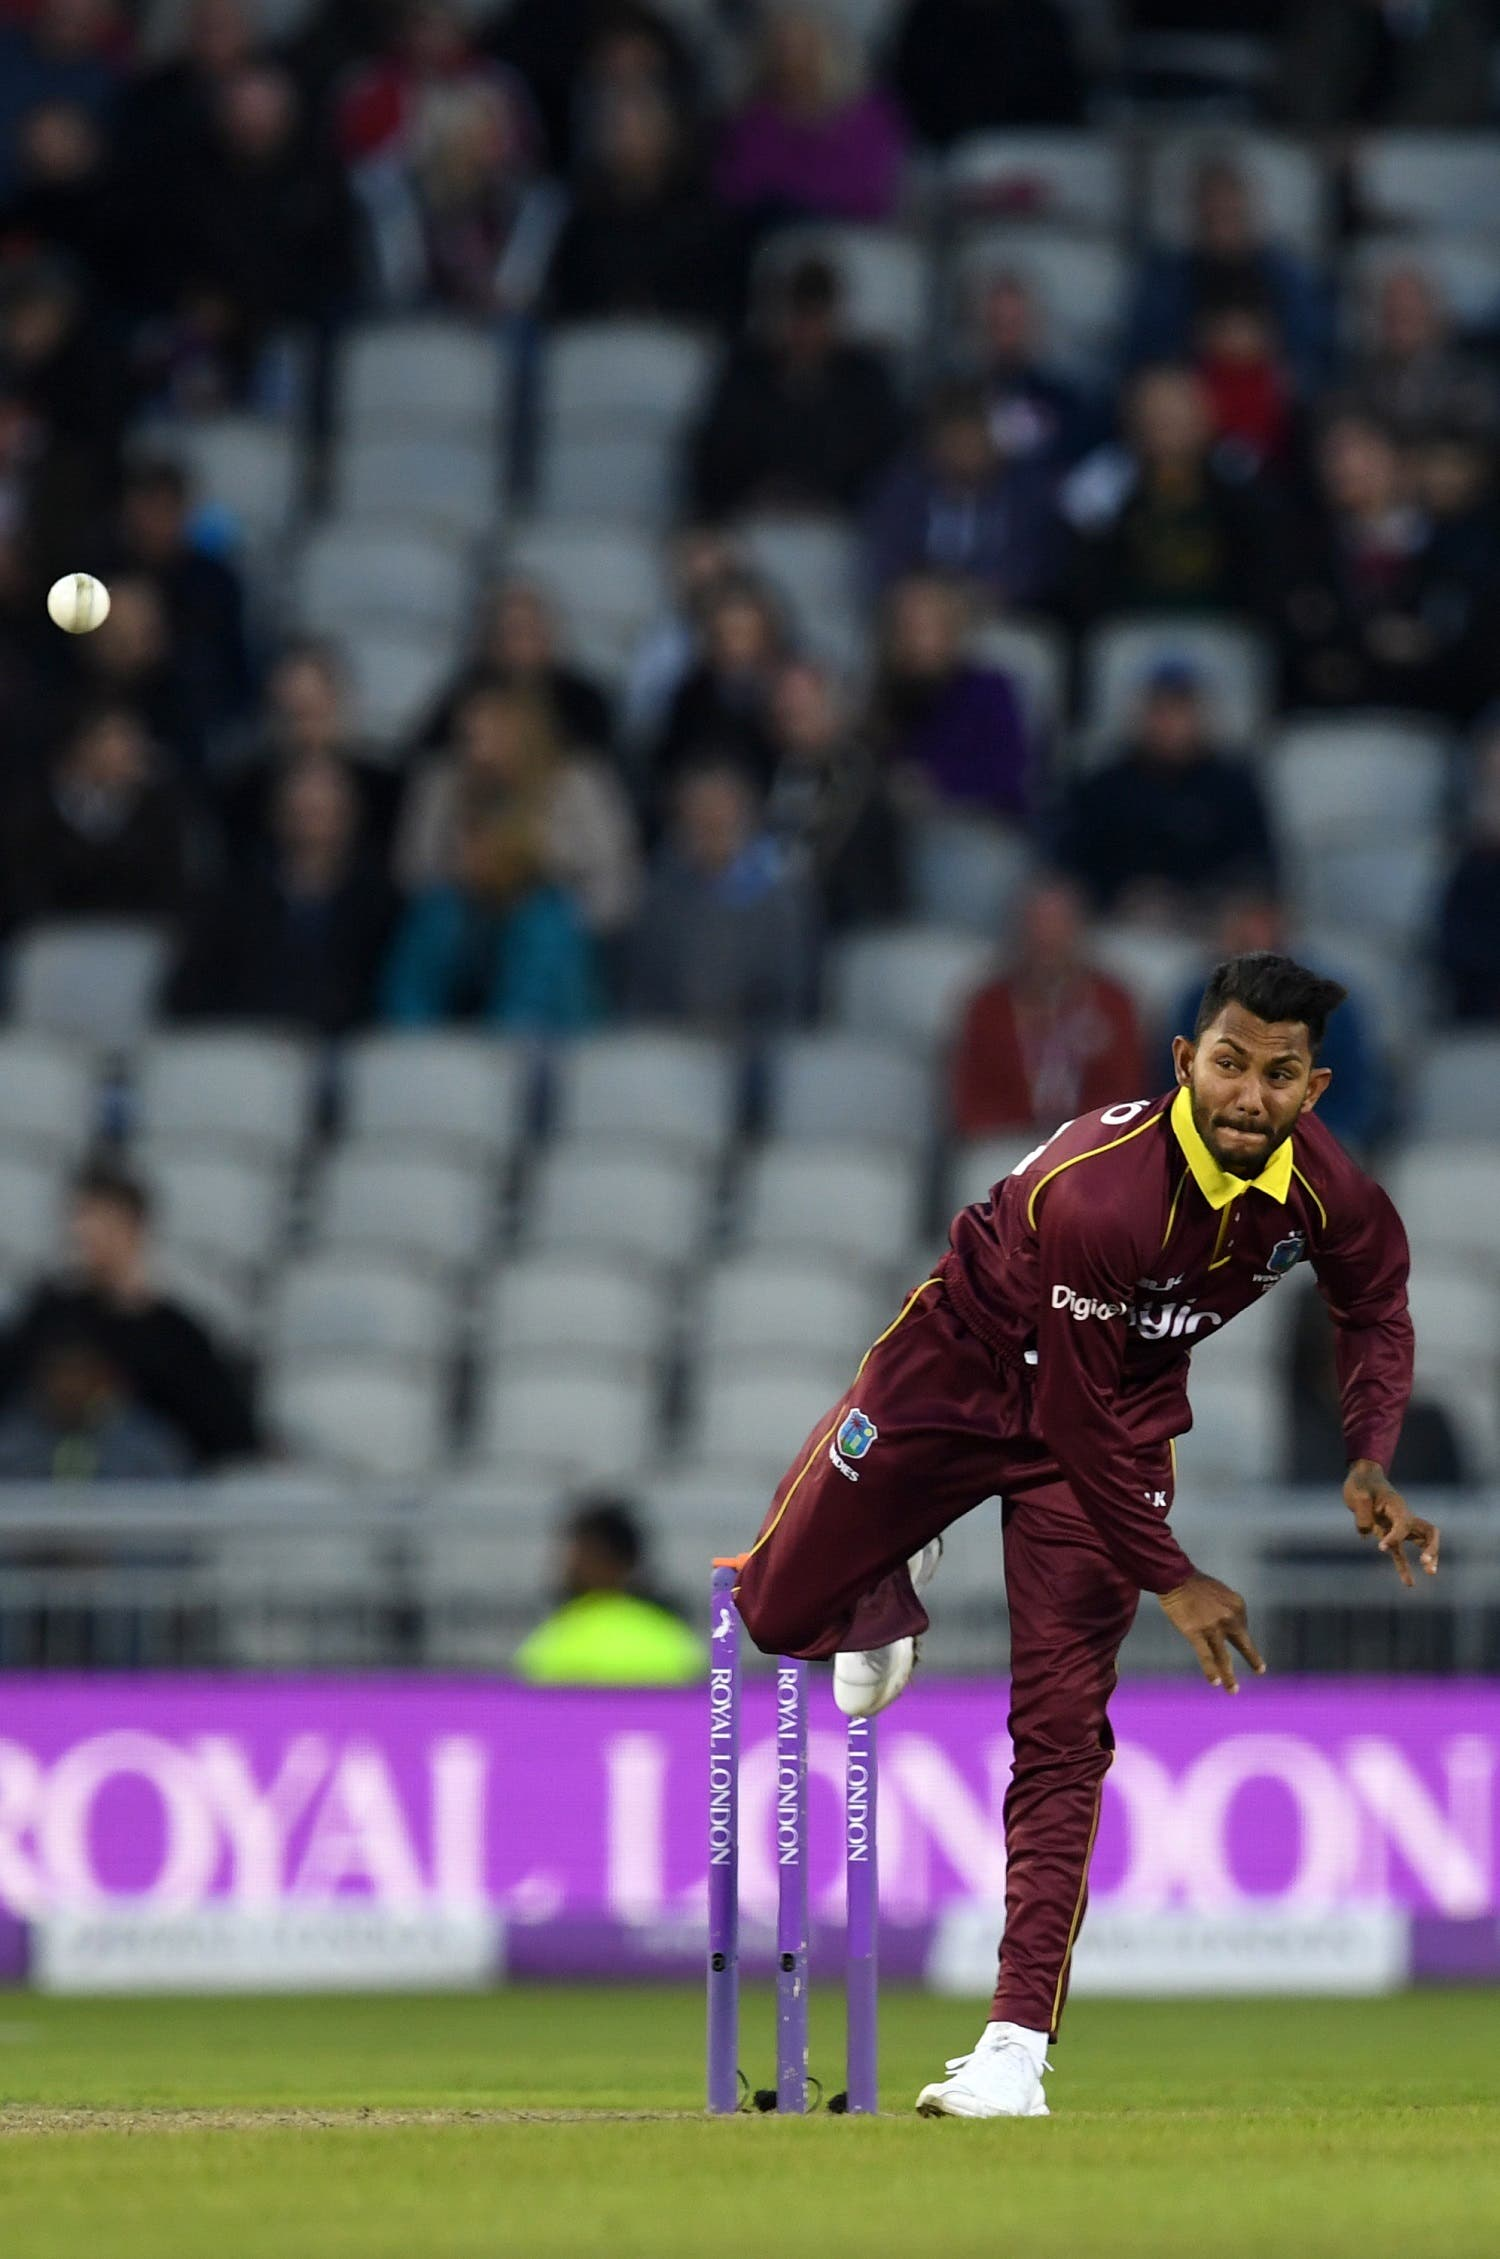 Bishoo bowls during the first One-Day International (ODI) cricket match between England and the West Indies at Old Trafford, Manchester, on September 19, 2017. (AFP)